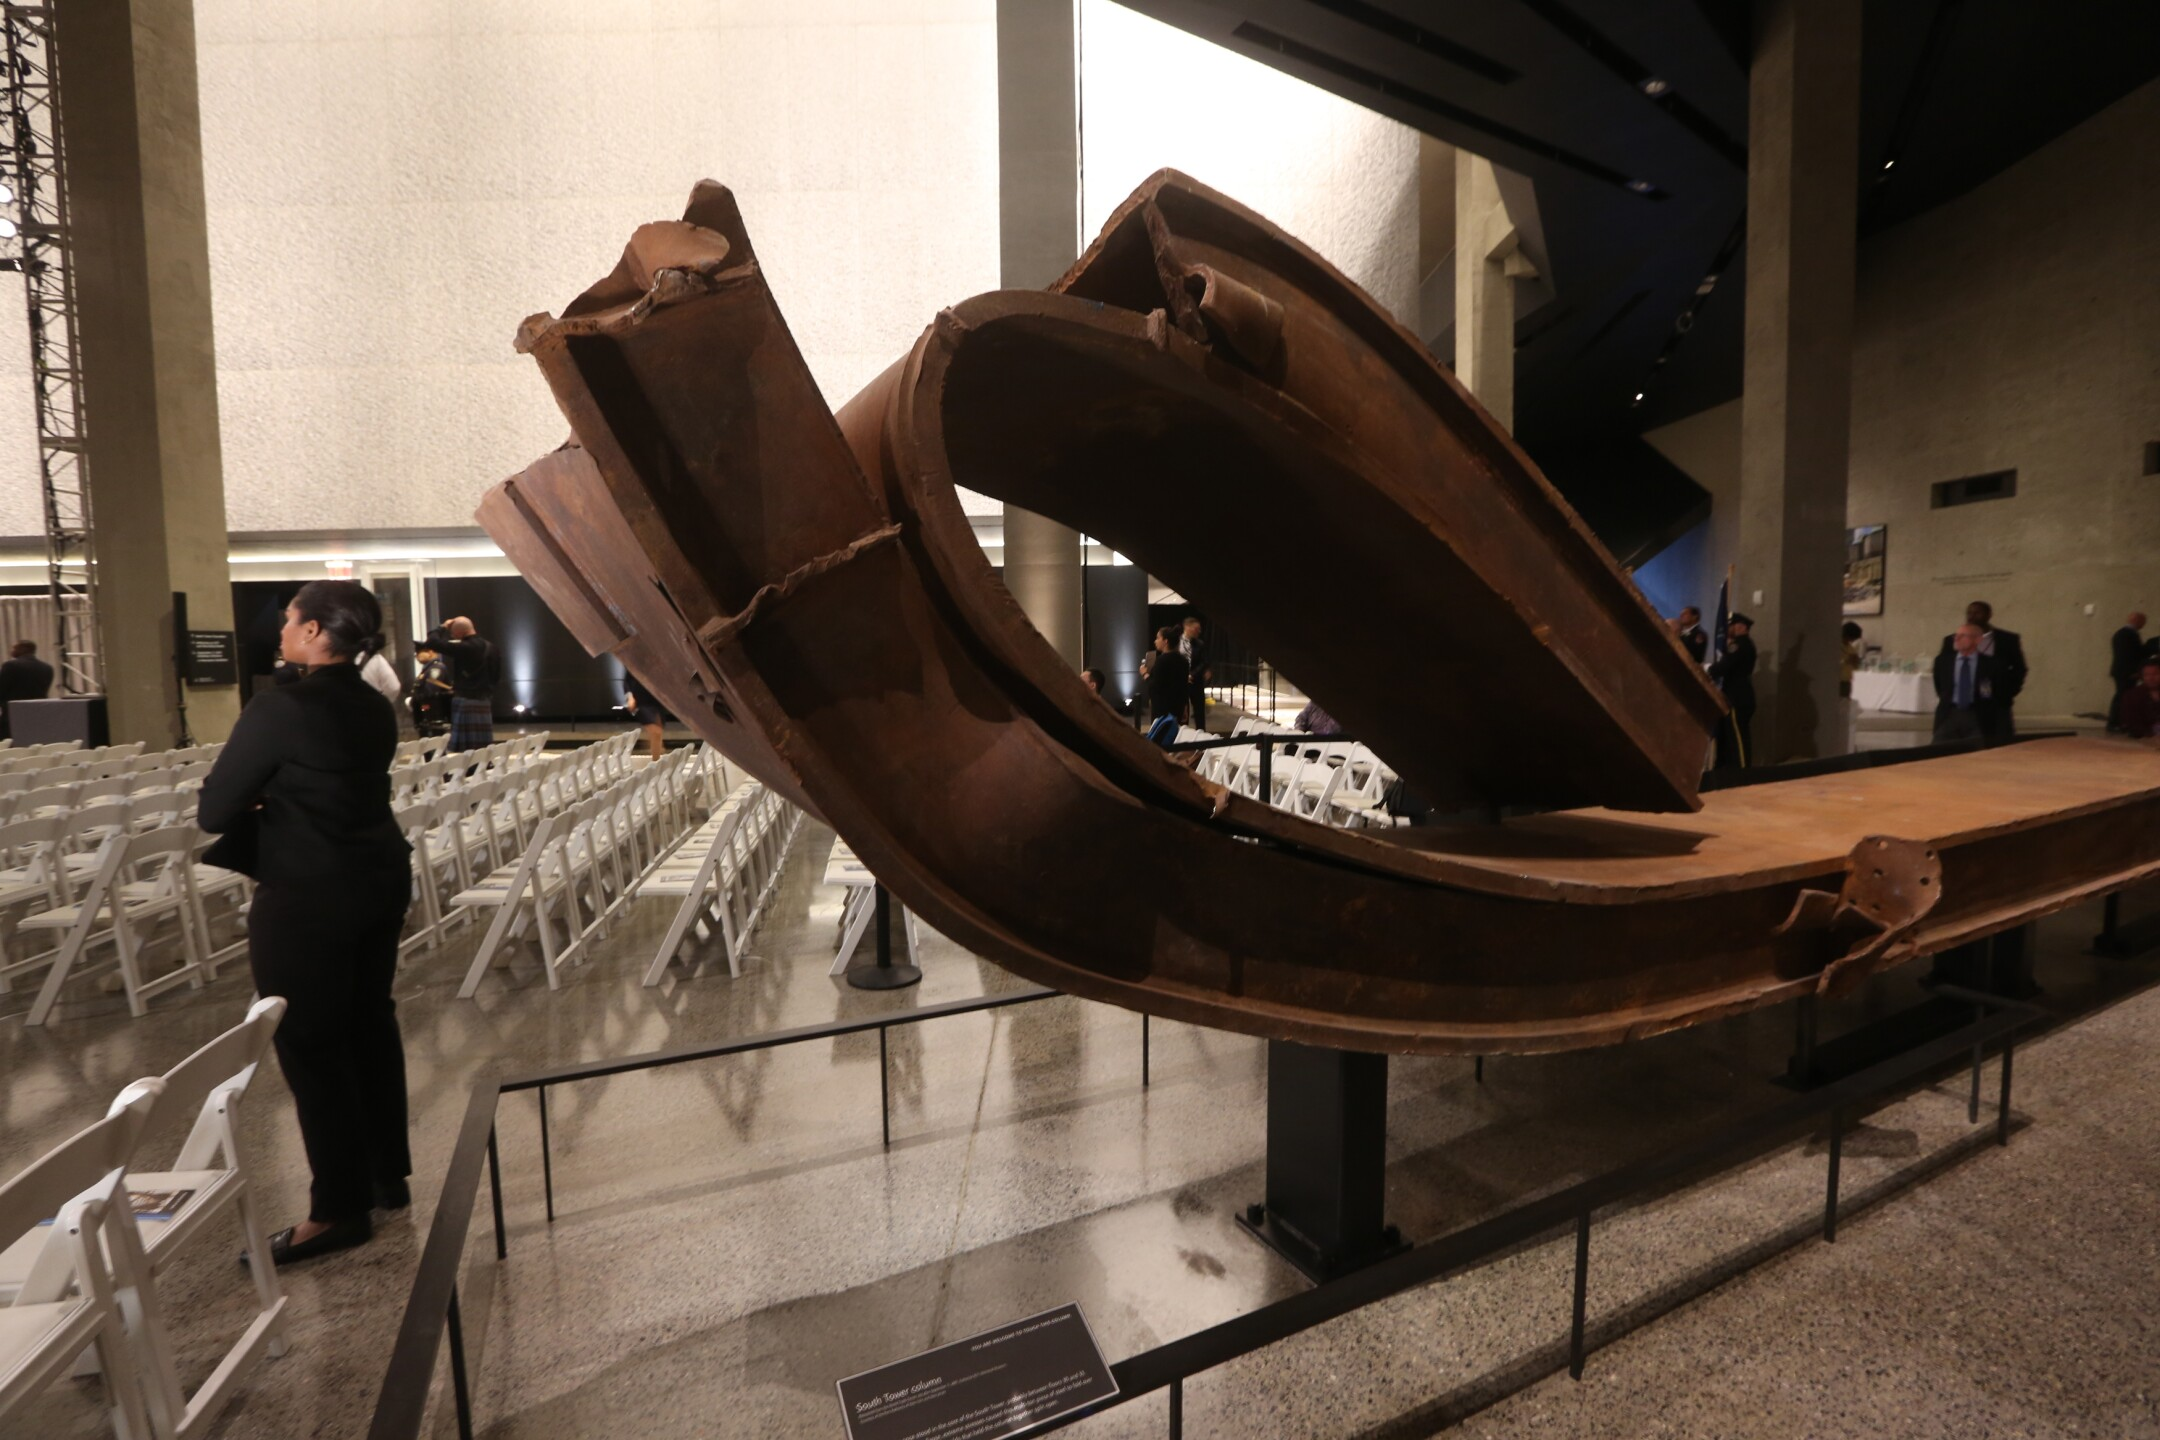 during the dedication ceremony at the National September 11 Memorial Museum in New York, May 15, 2014.